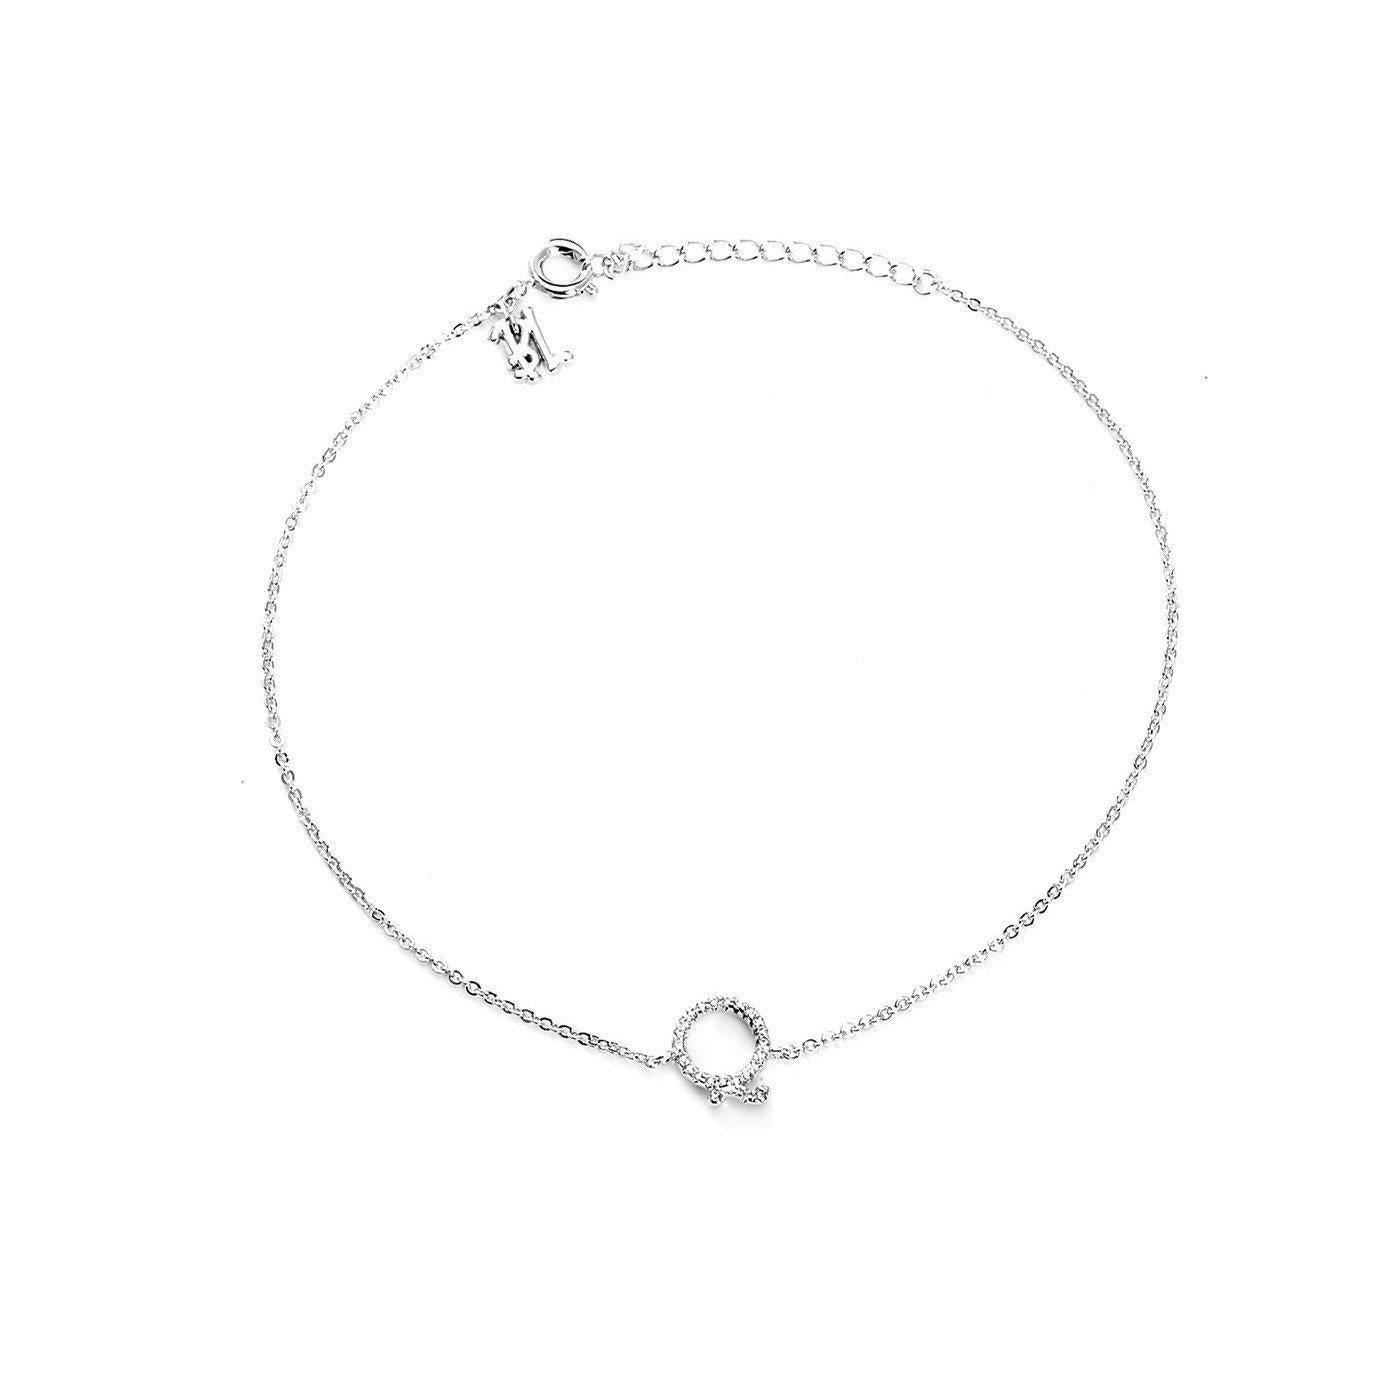 Your Initial Q Anklet-Blinglane